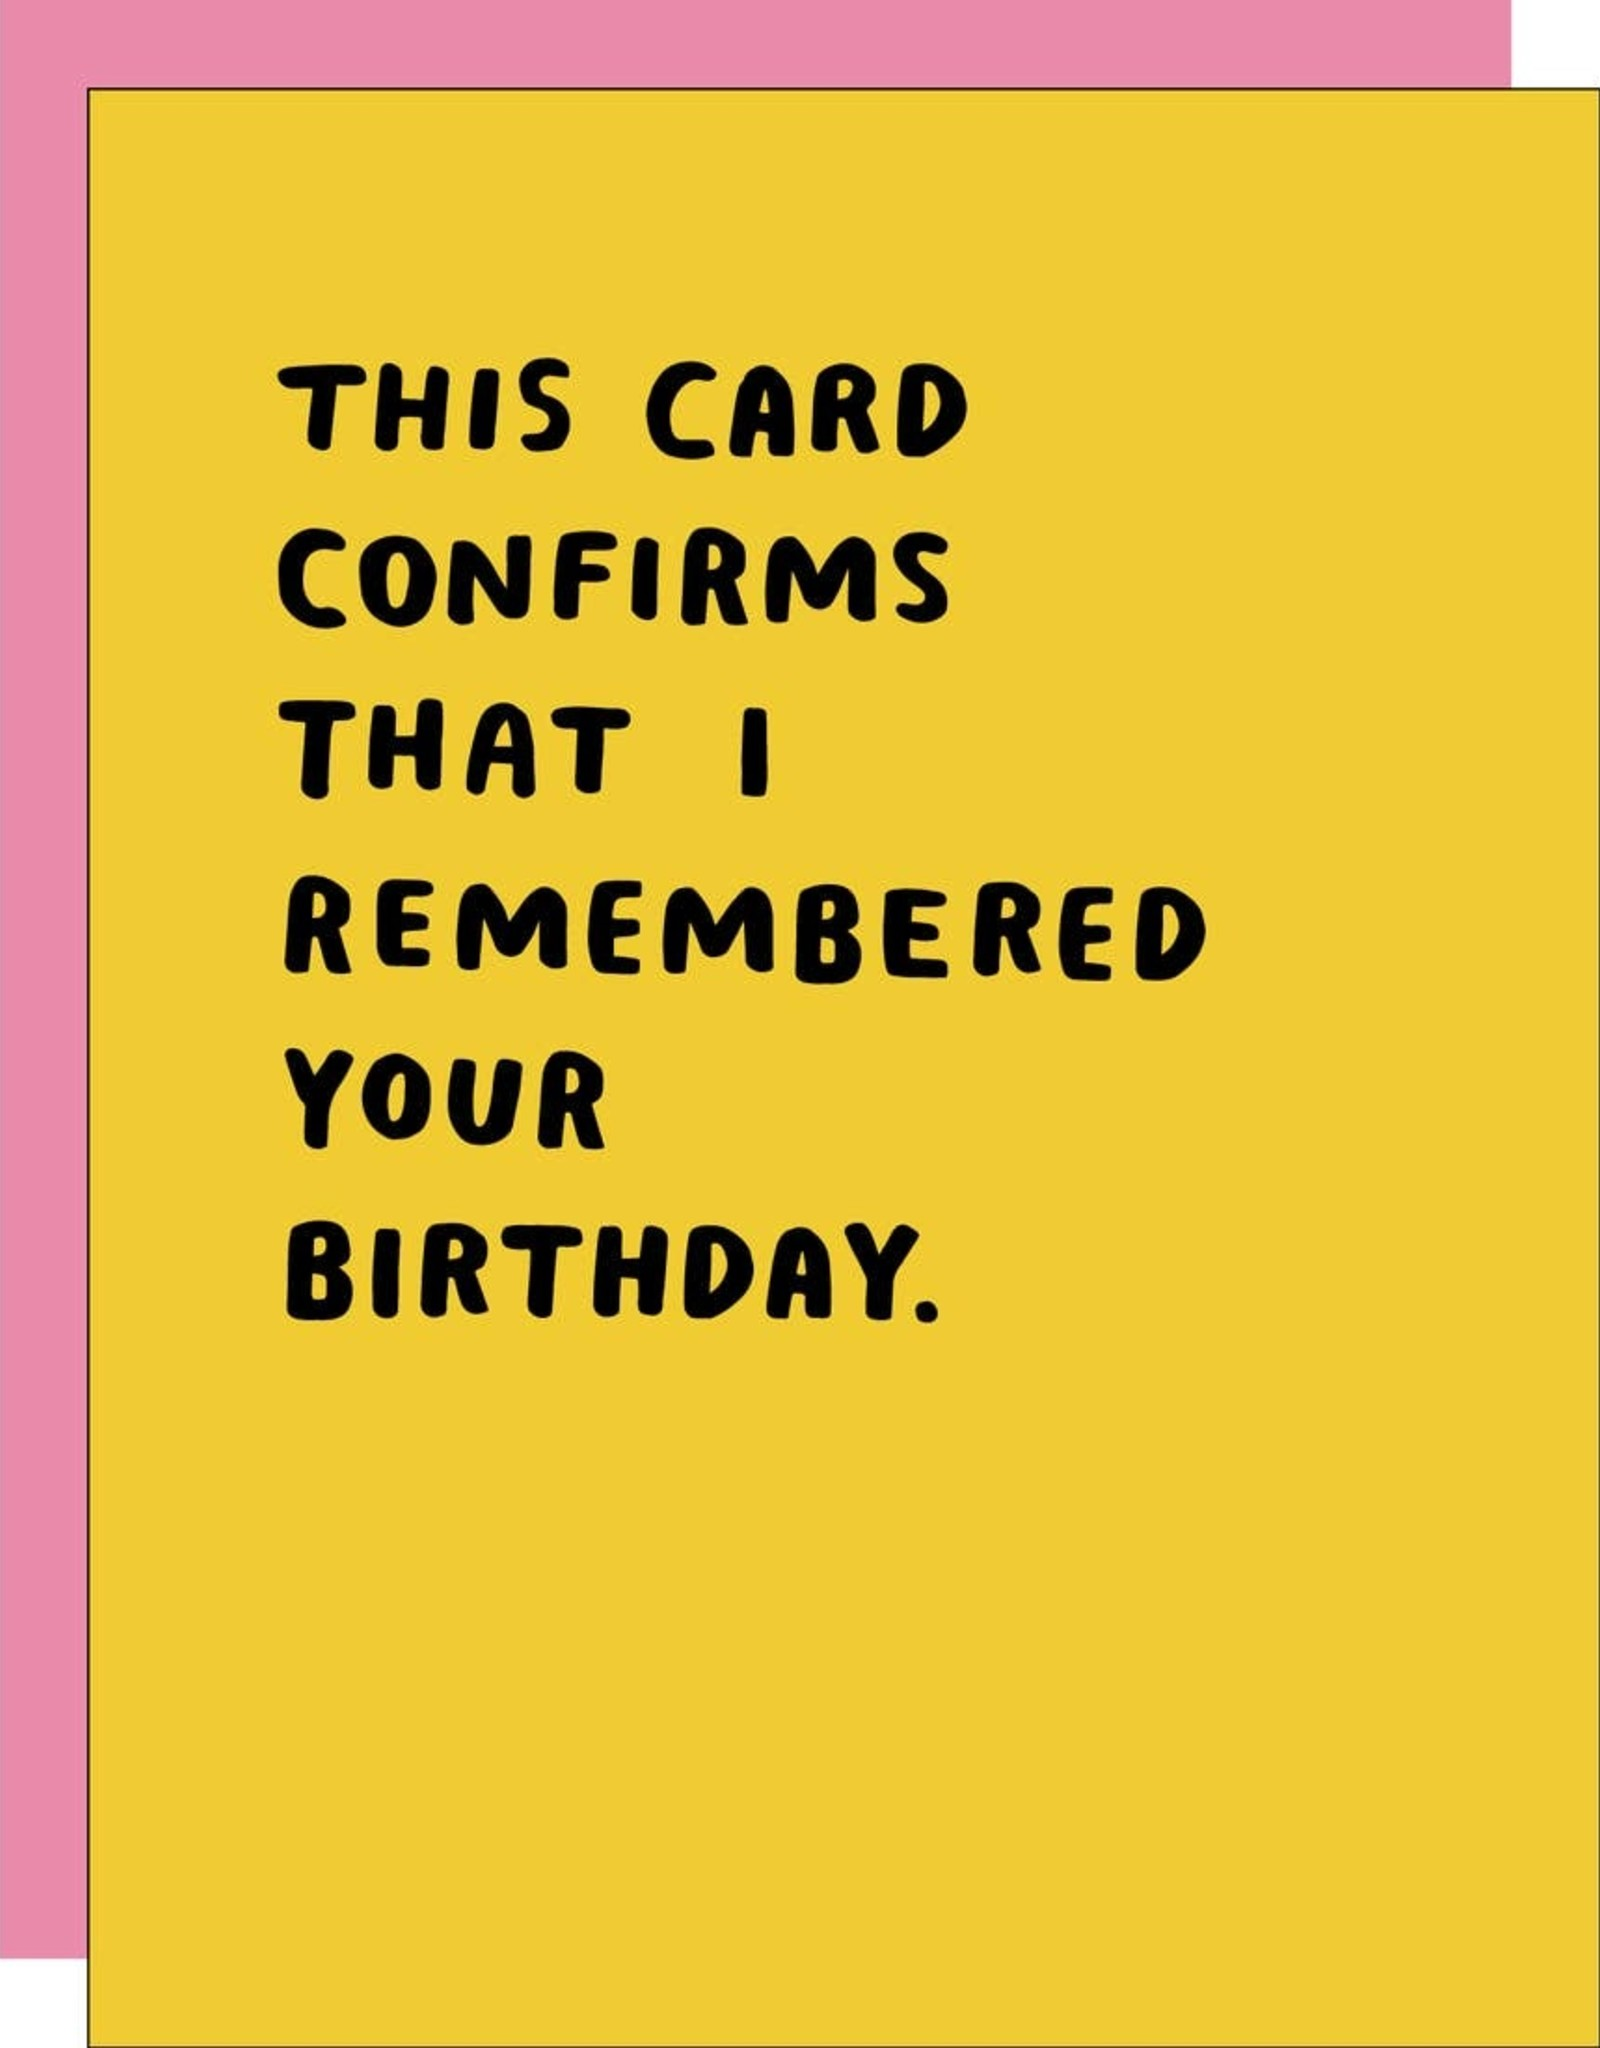 Card - Birthday: Confirmed I remembered